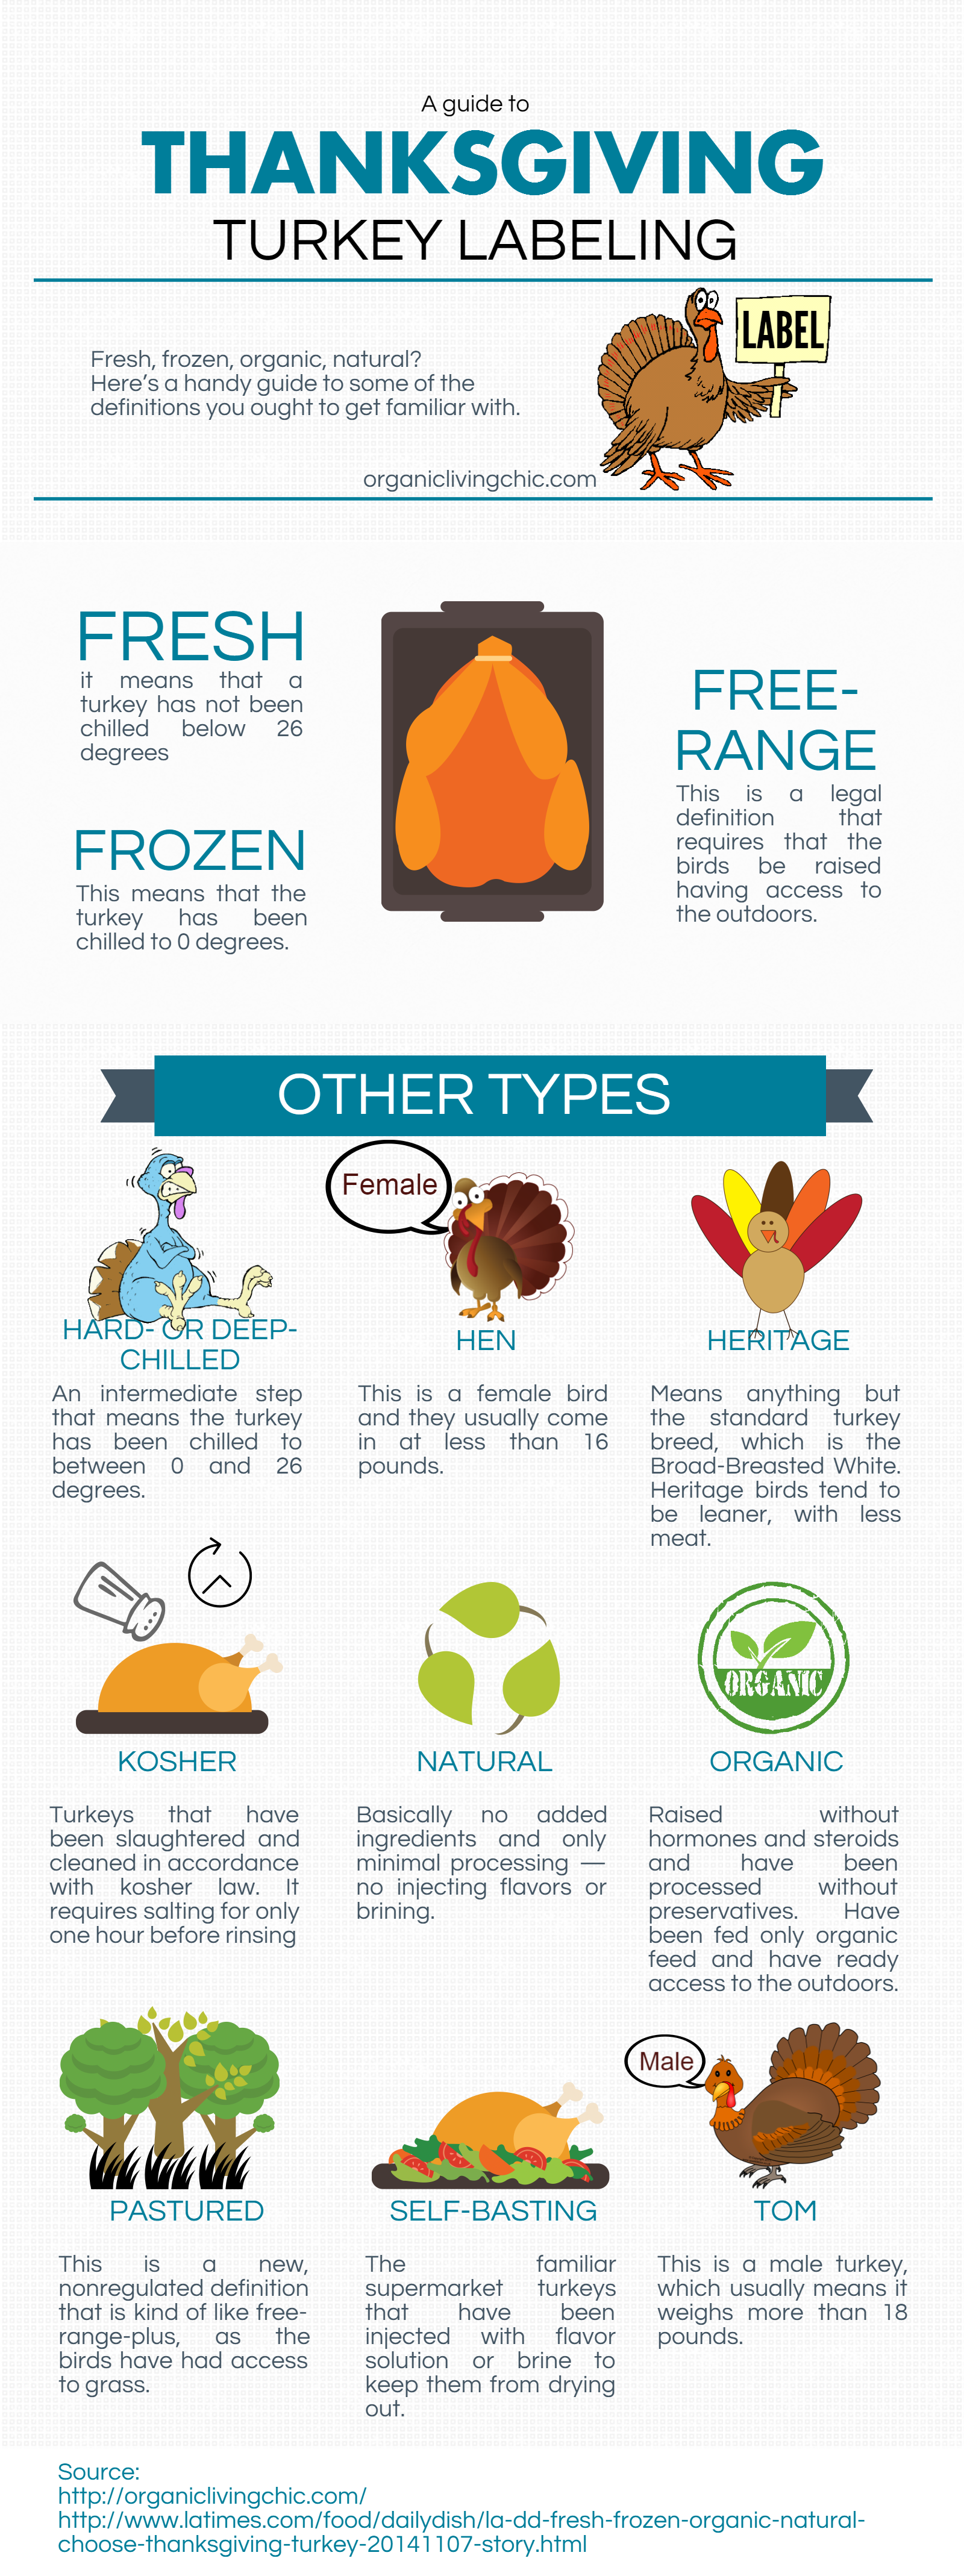 a guide to thanksgiving turkey labeling, turkey for thanksgiving, healthy thanksgiving, organic turkey, organic food for thanksgiving, organic thanksgiving, organic turkey for thanksgiving, organic turkey labeling, a guide to thanksgiving turkey labeling infographic, turkey labeling infographic